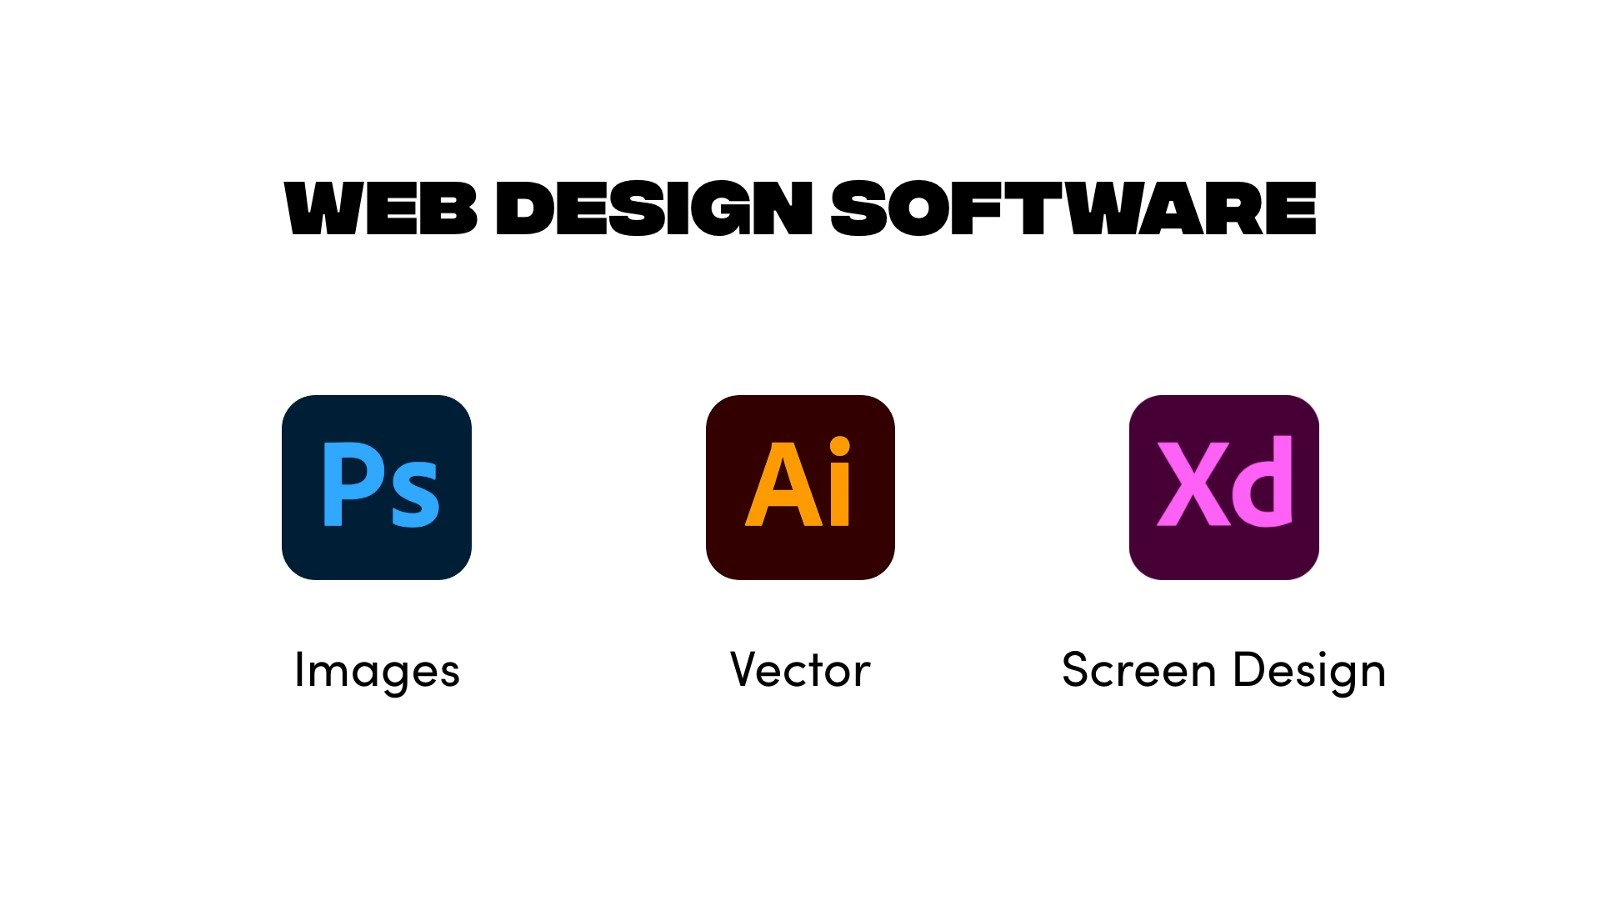 Web design software: Photoshop for images, Illustrator for vectors, and Adobe XD for screen design